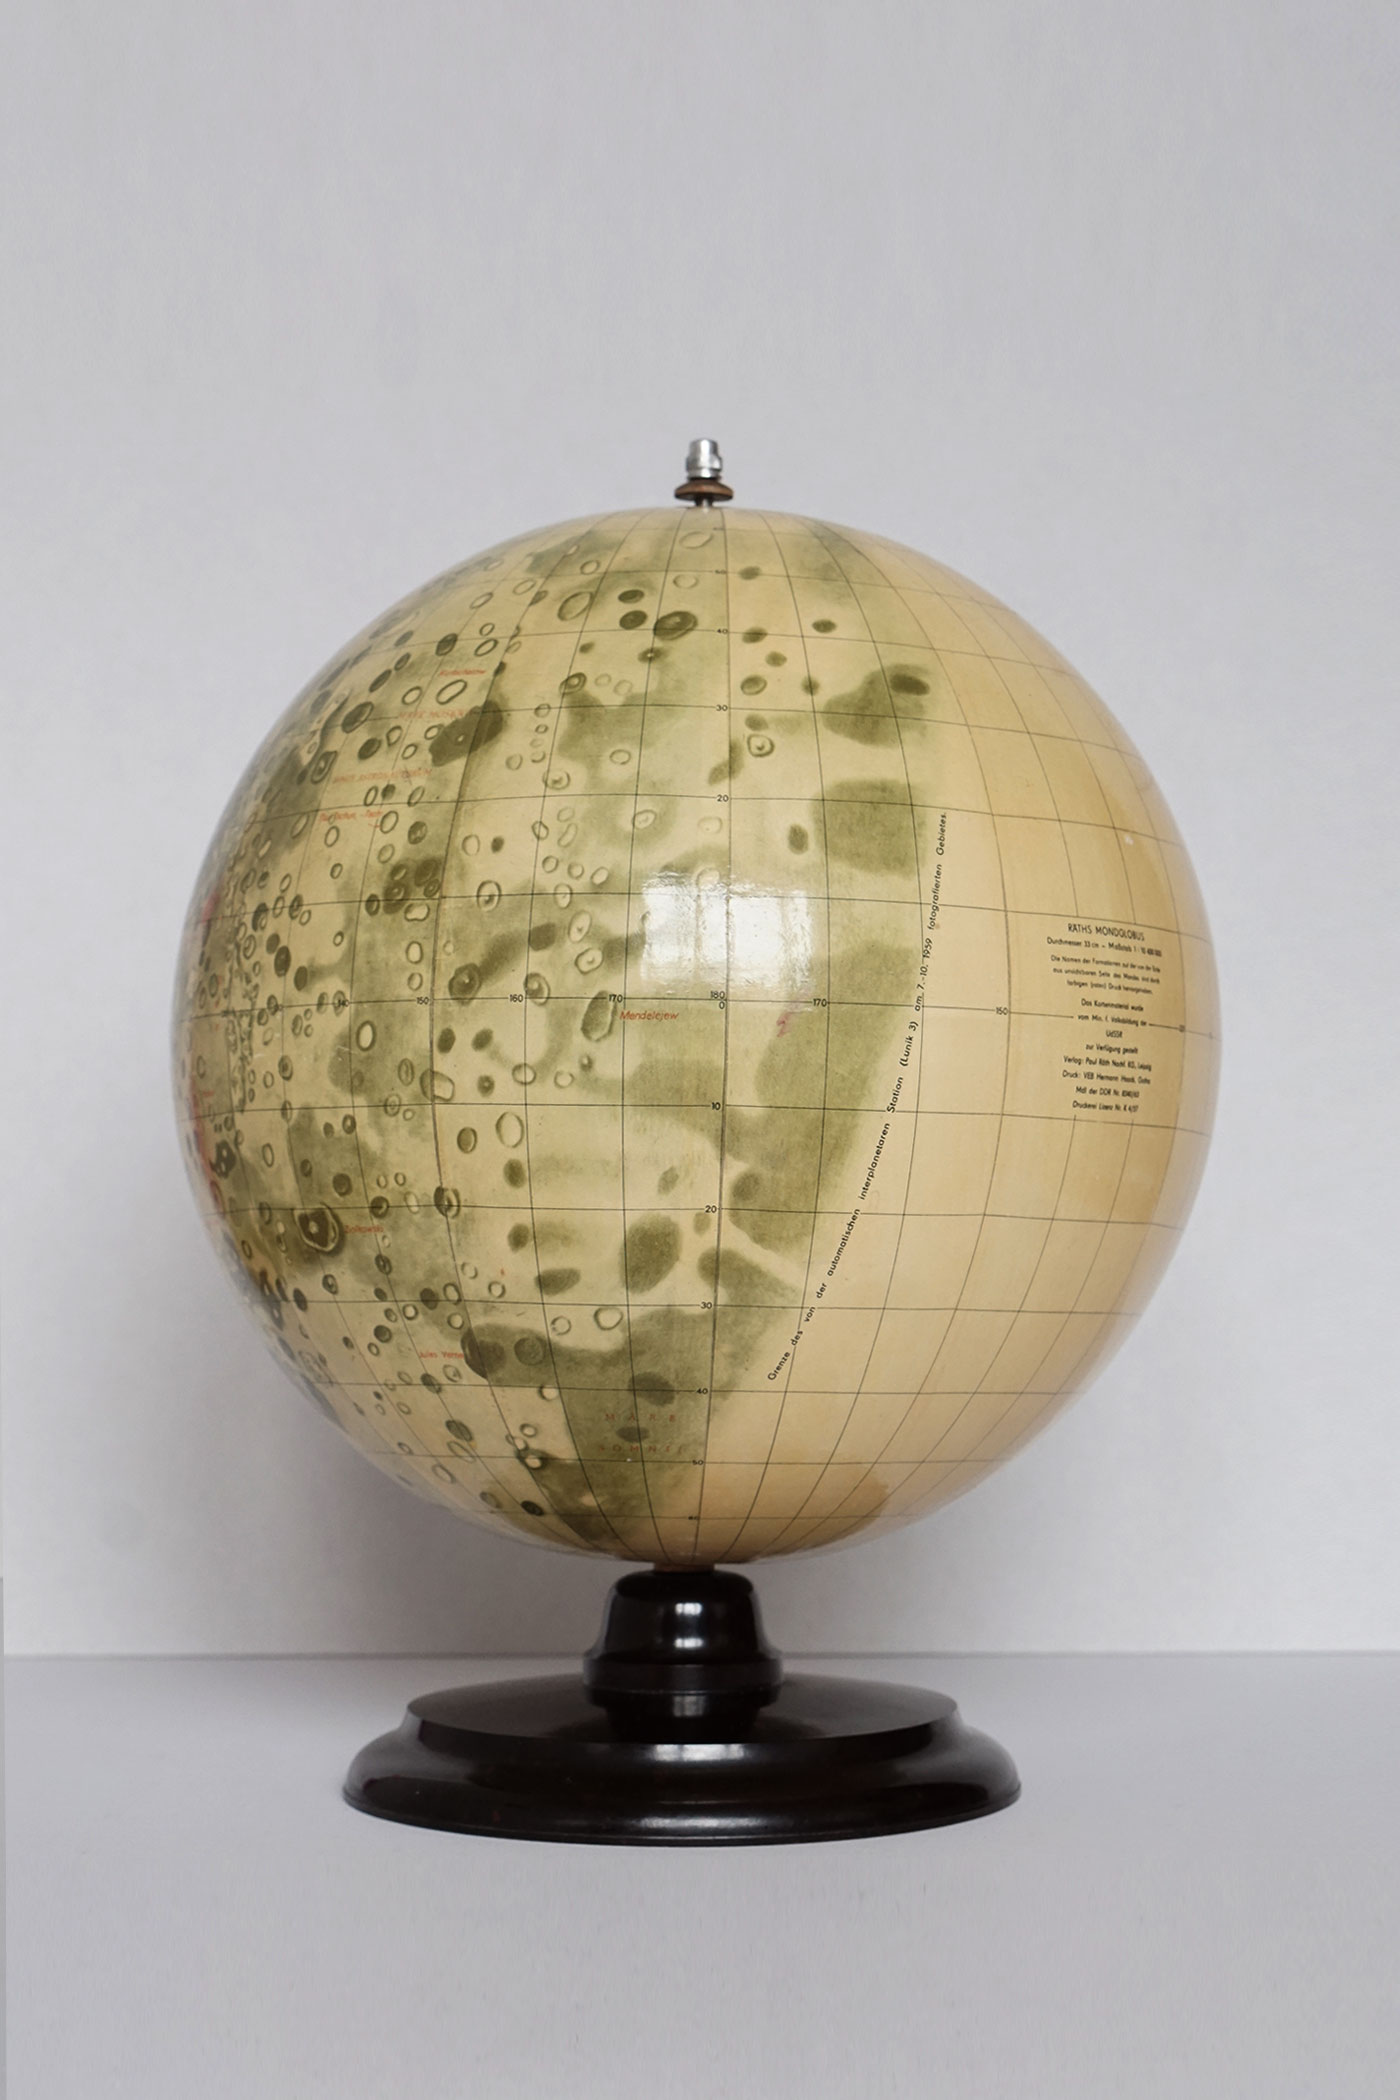 The first Moon globe displaying the Far side of the Moon